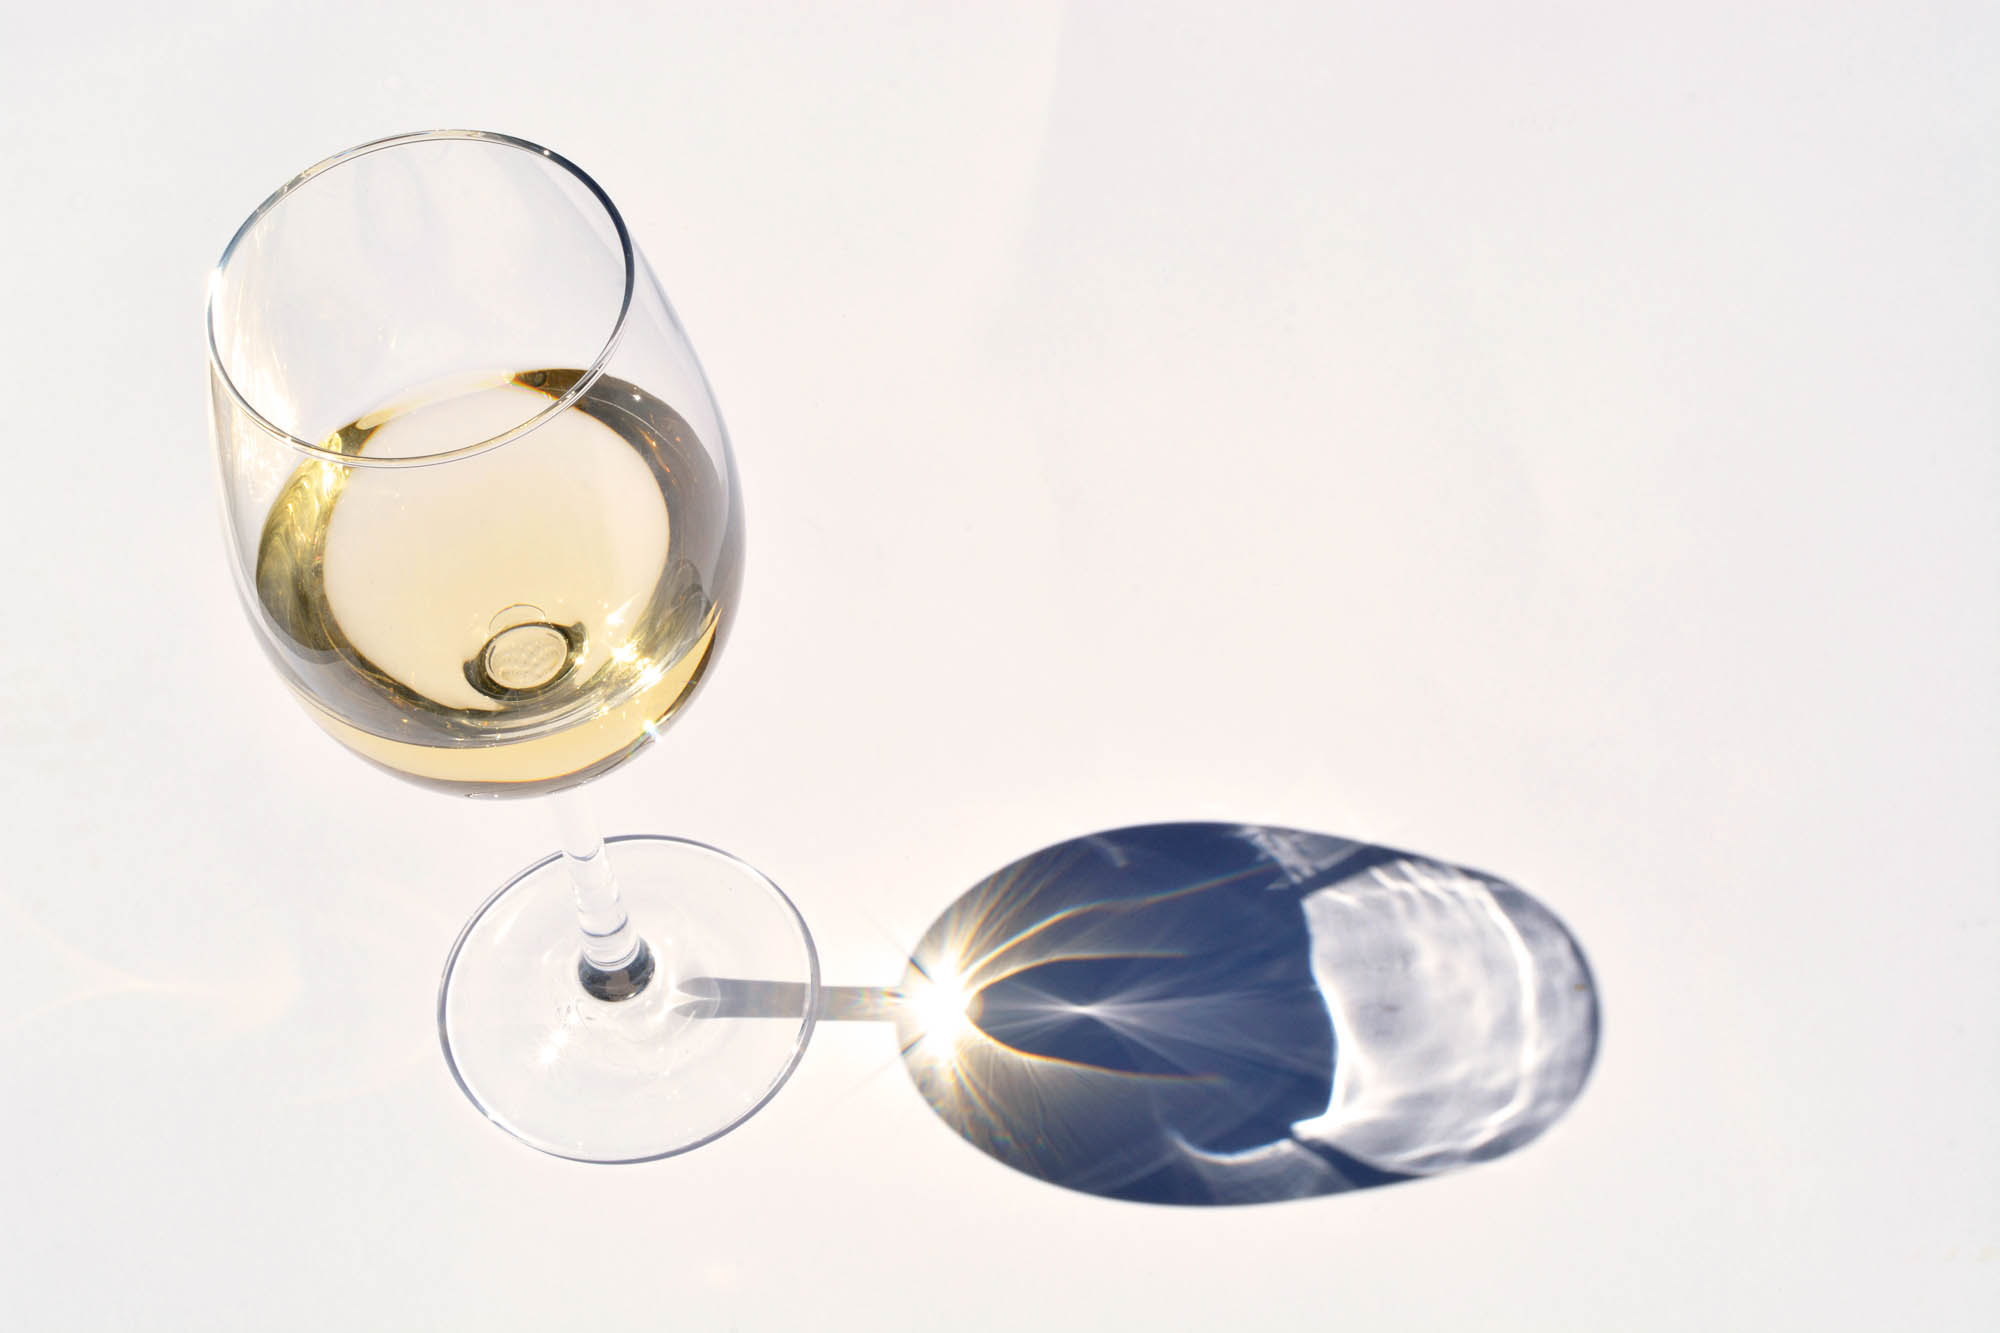 White wine glass with reflection shadow effect on a white empty copy space background